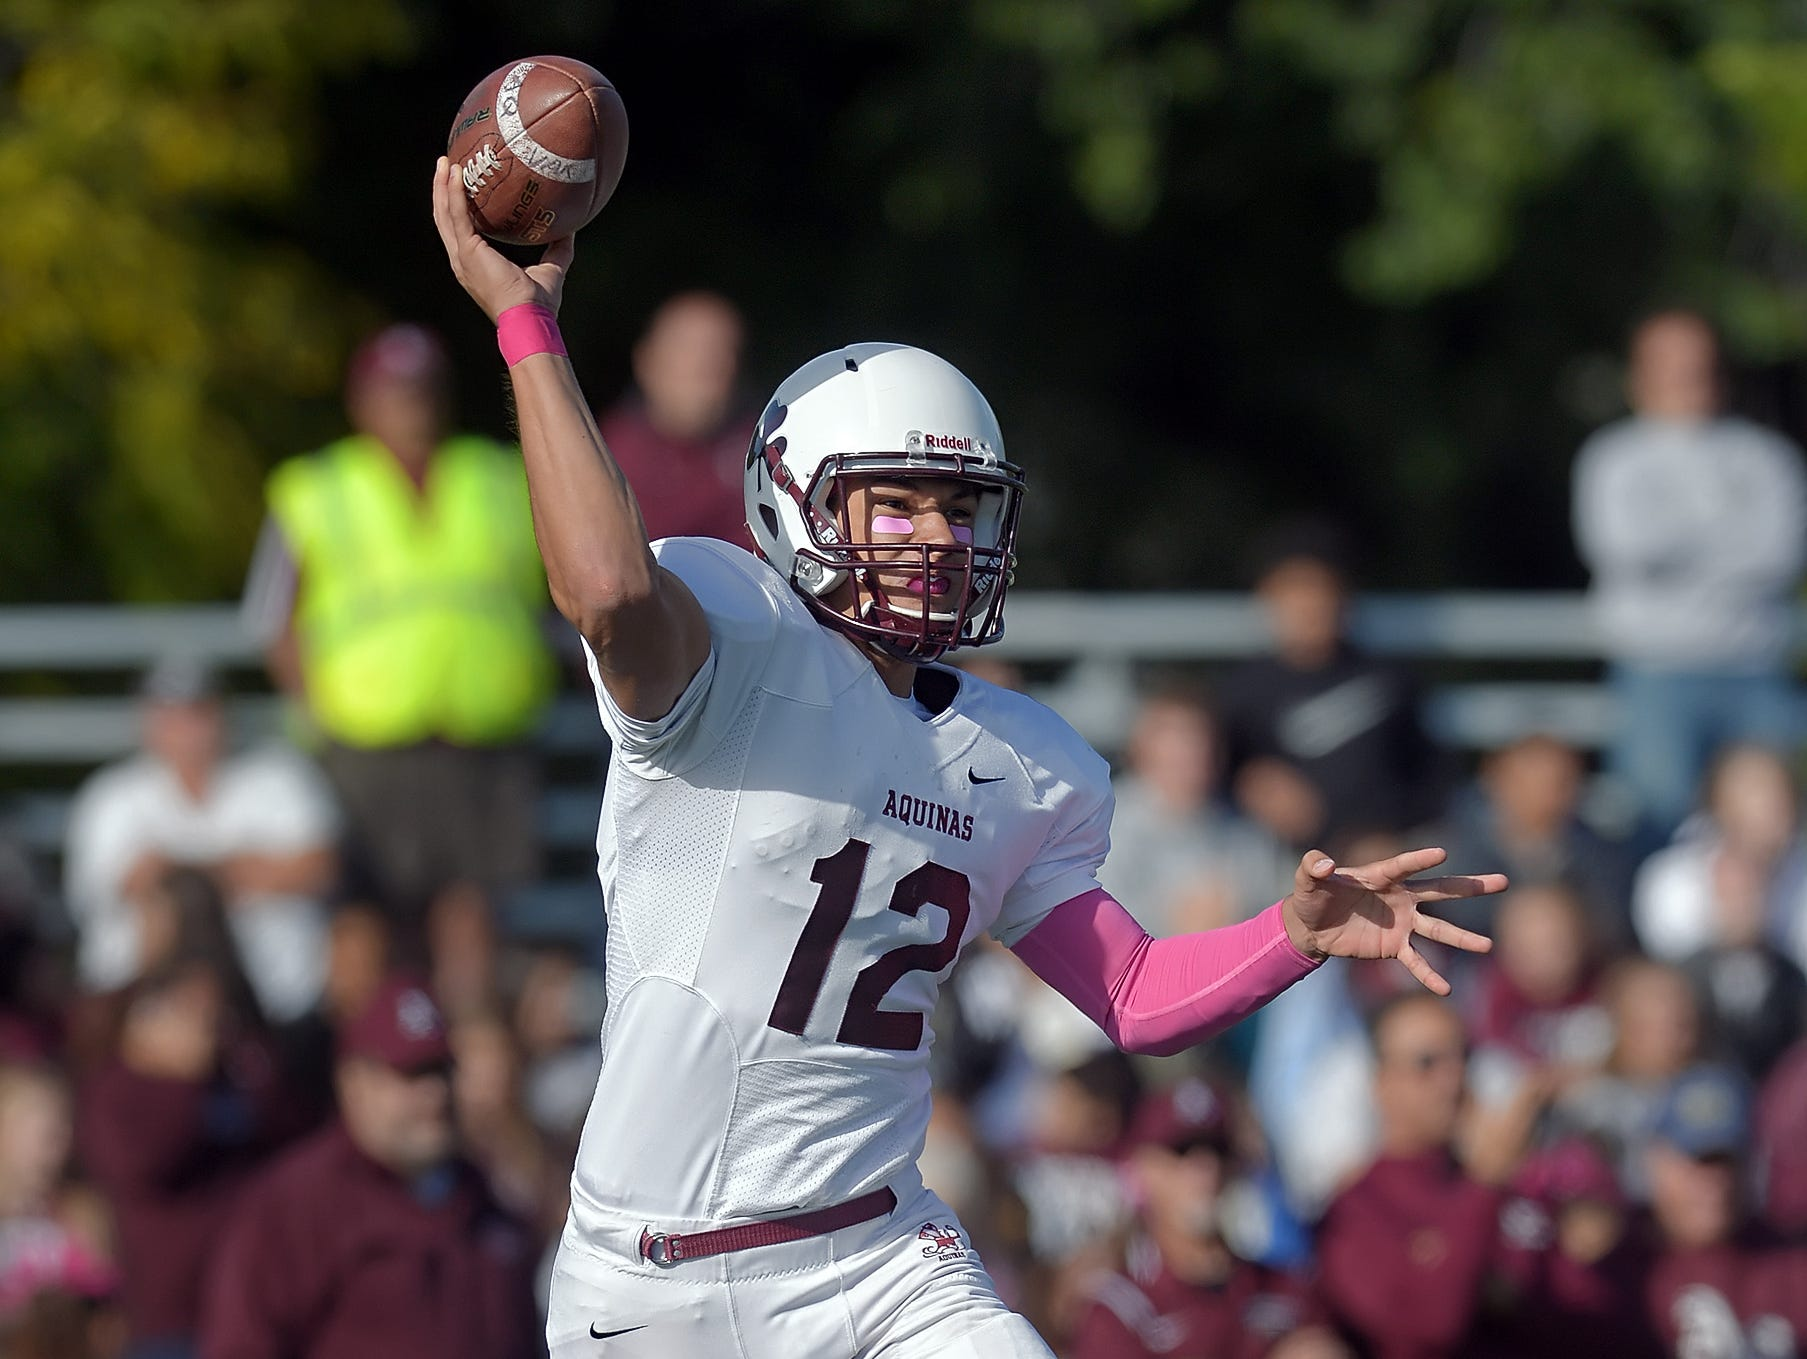 Aquinas quarterback Jake Zembiec passed for a Section V record 3,007 yards and 37 touchdowns to lead his team to 13-0 record and state title. He continues to pile up post-season honors.